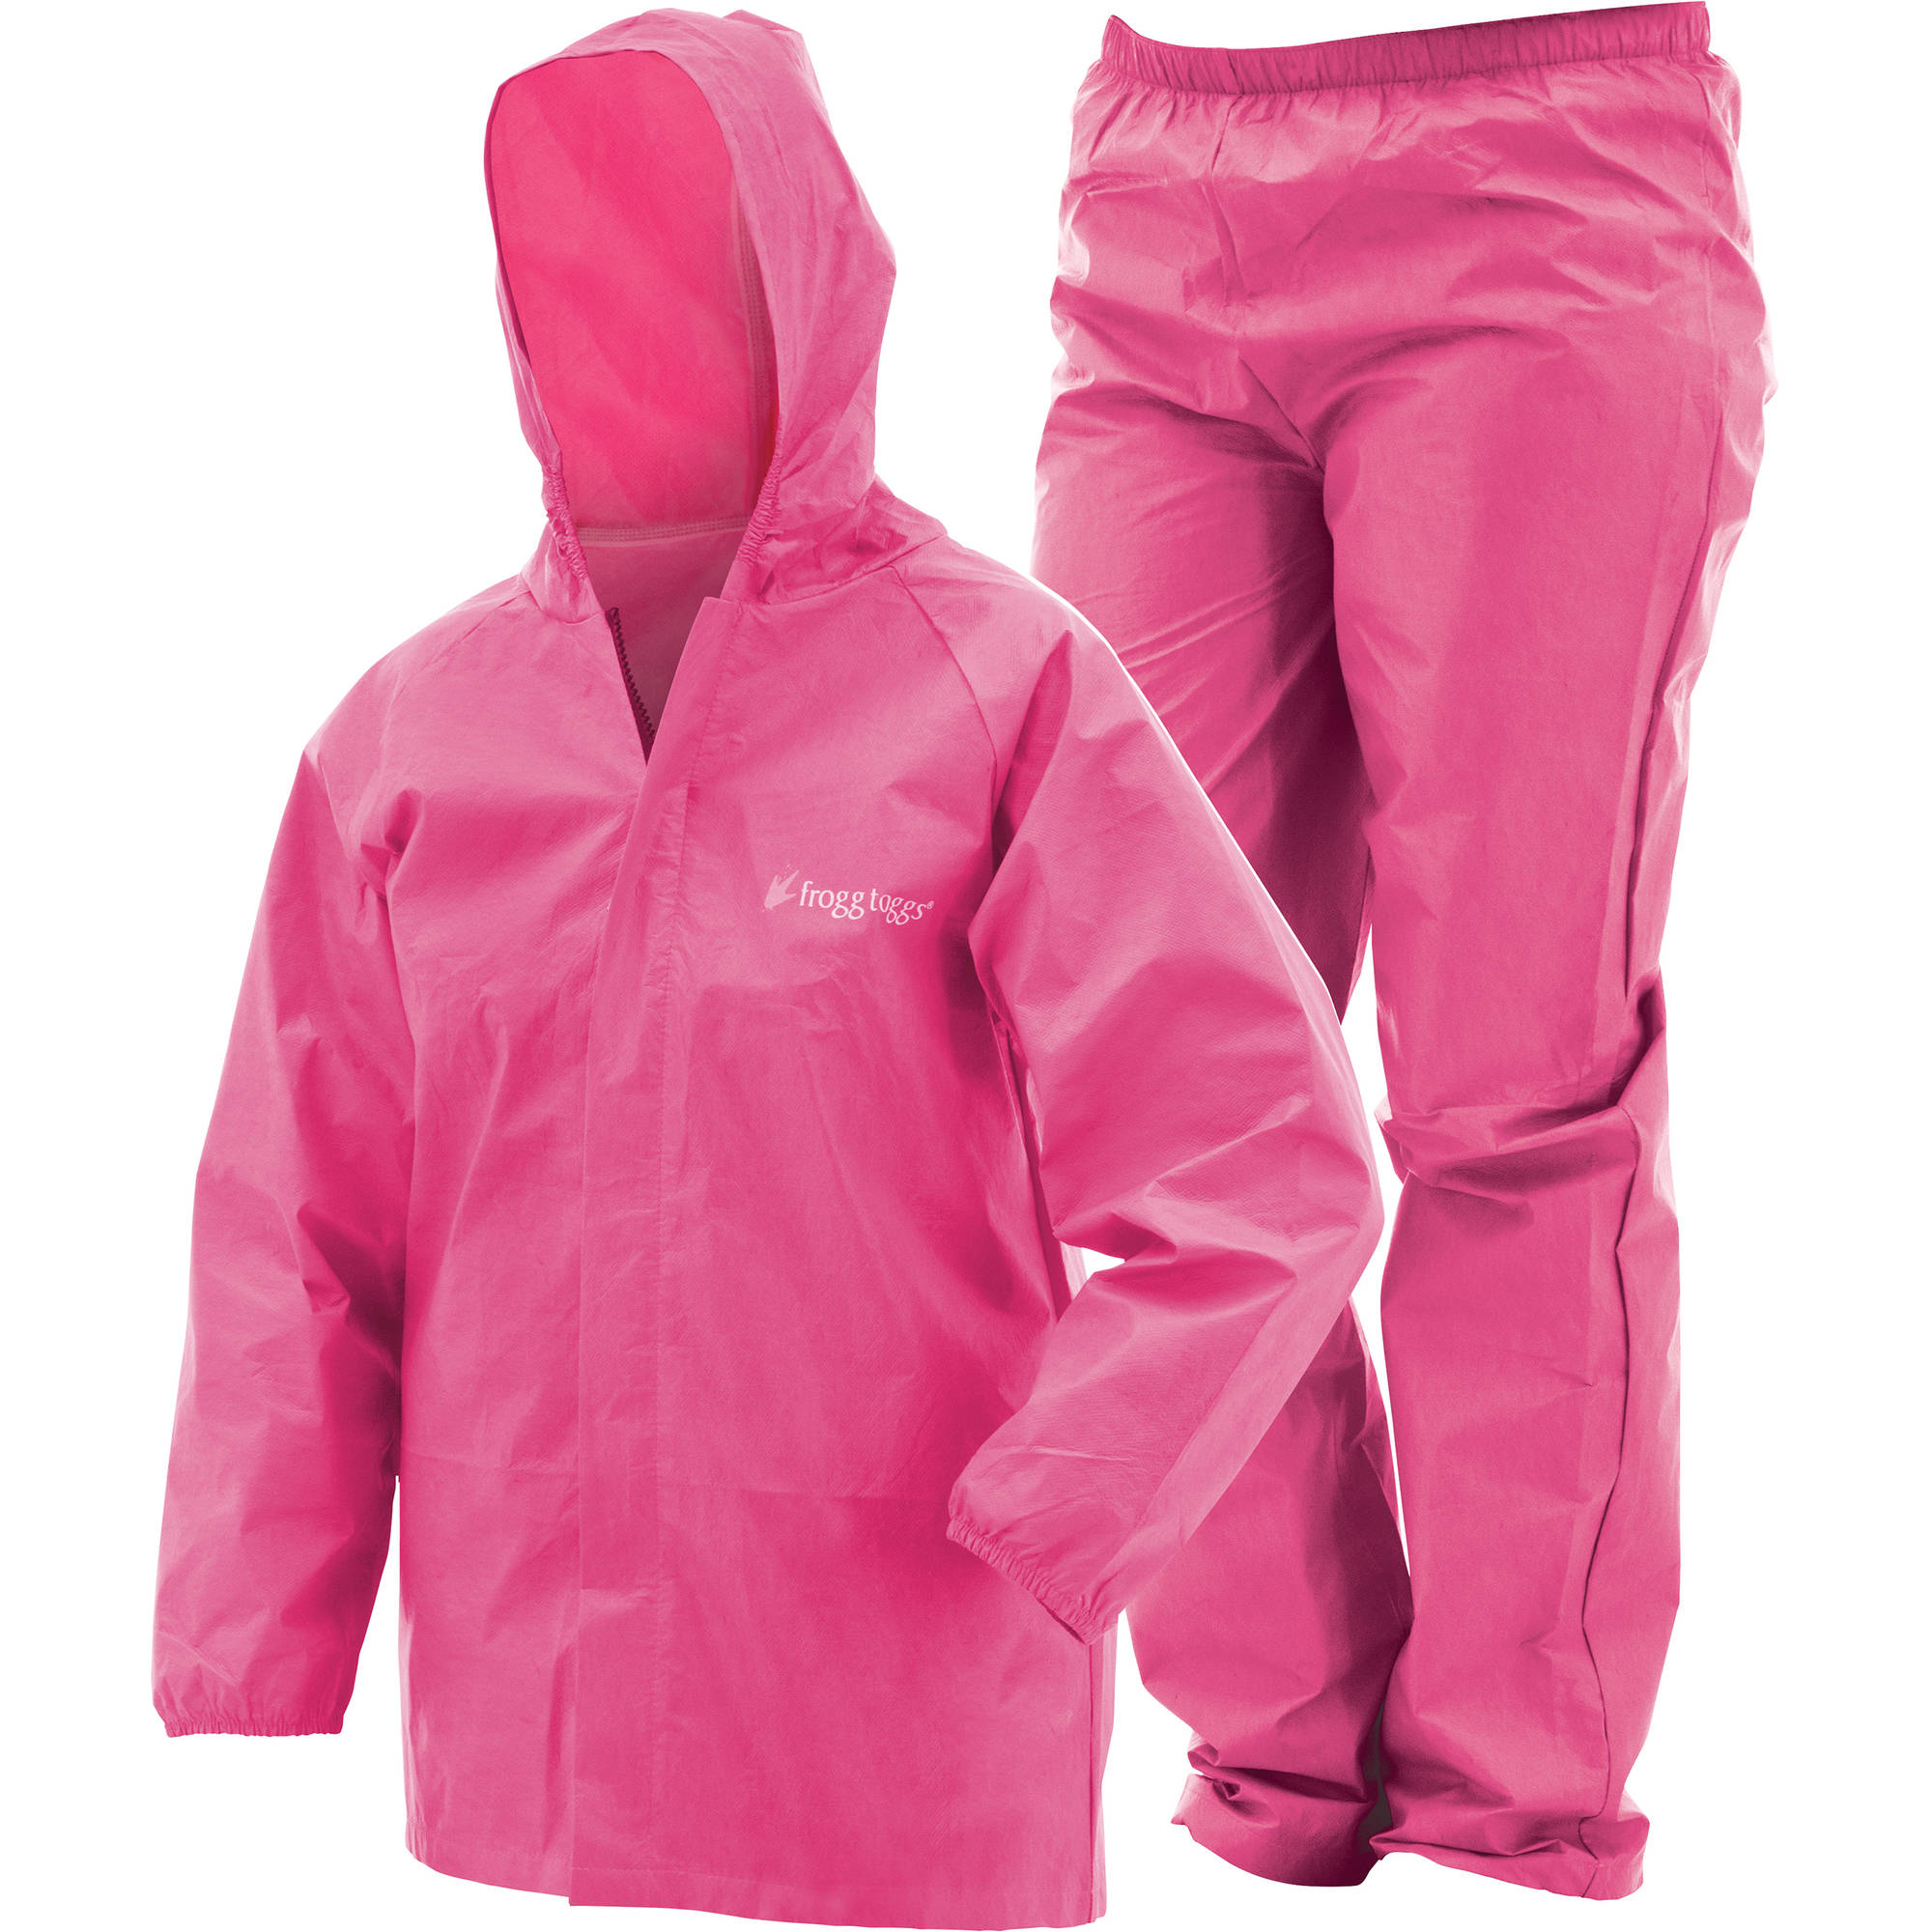 Frogg Toggs Youth Ultra-Lite Rain Suit Pink by Generic